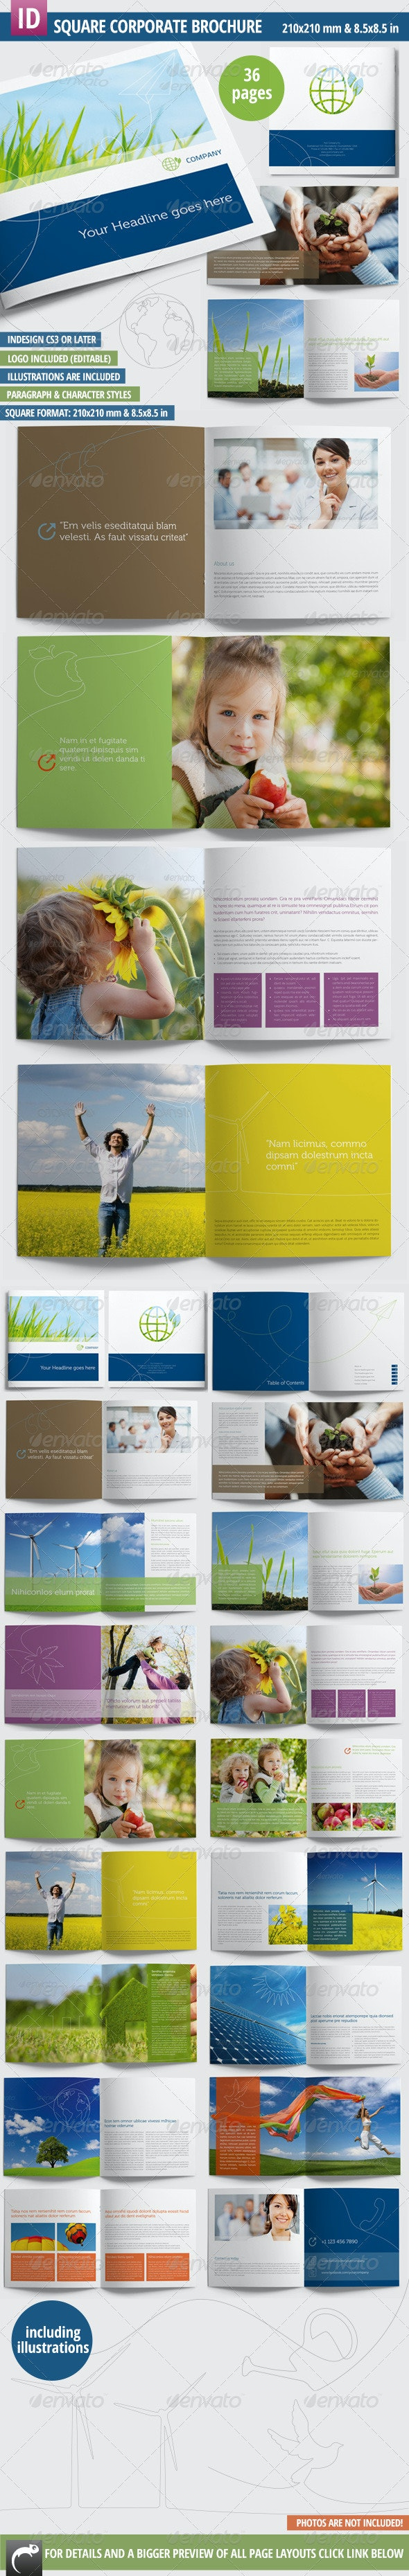 Square Corporate / Image Brochure - 36 Pages - Corporate Brochures